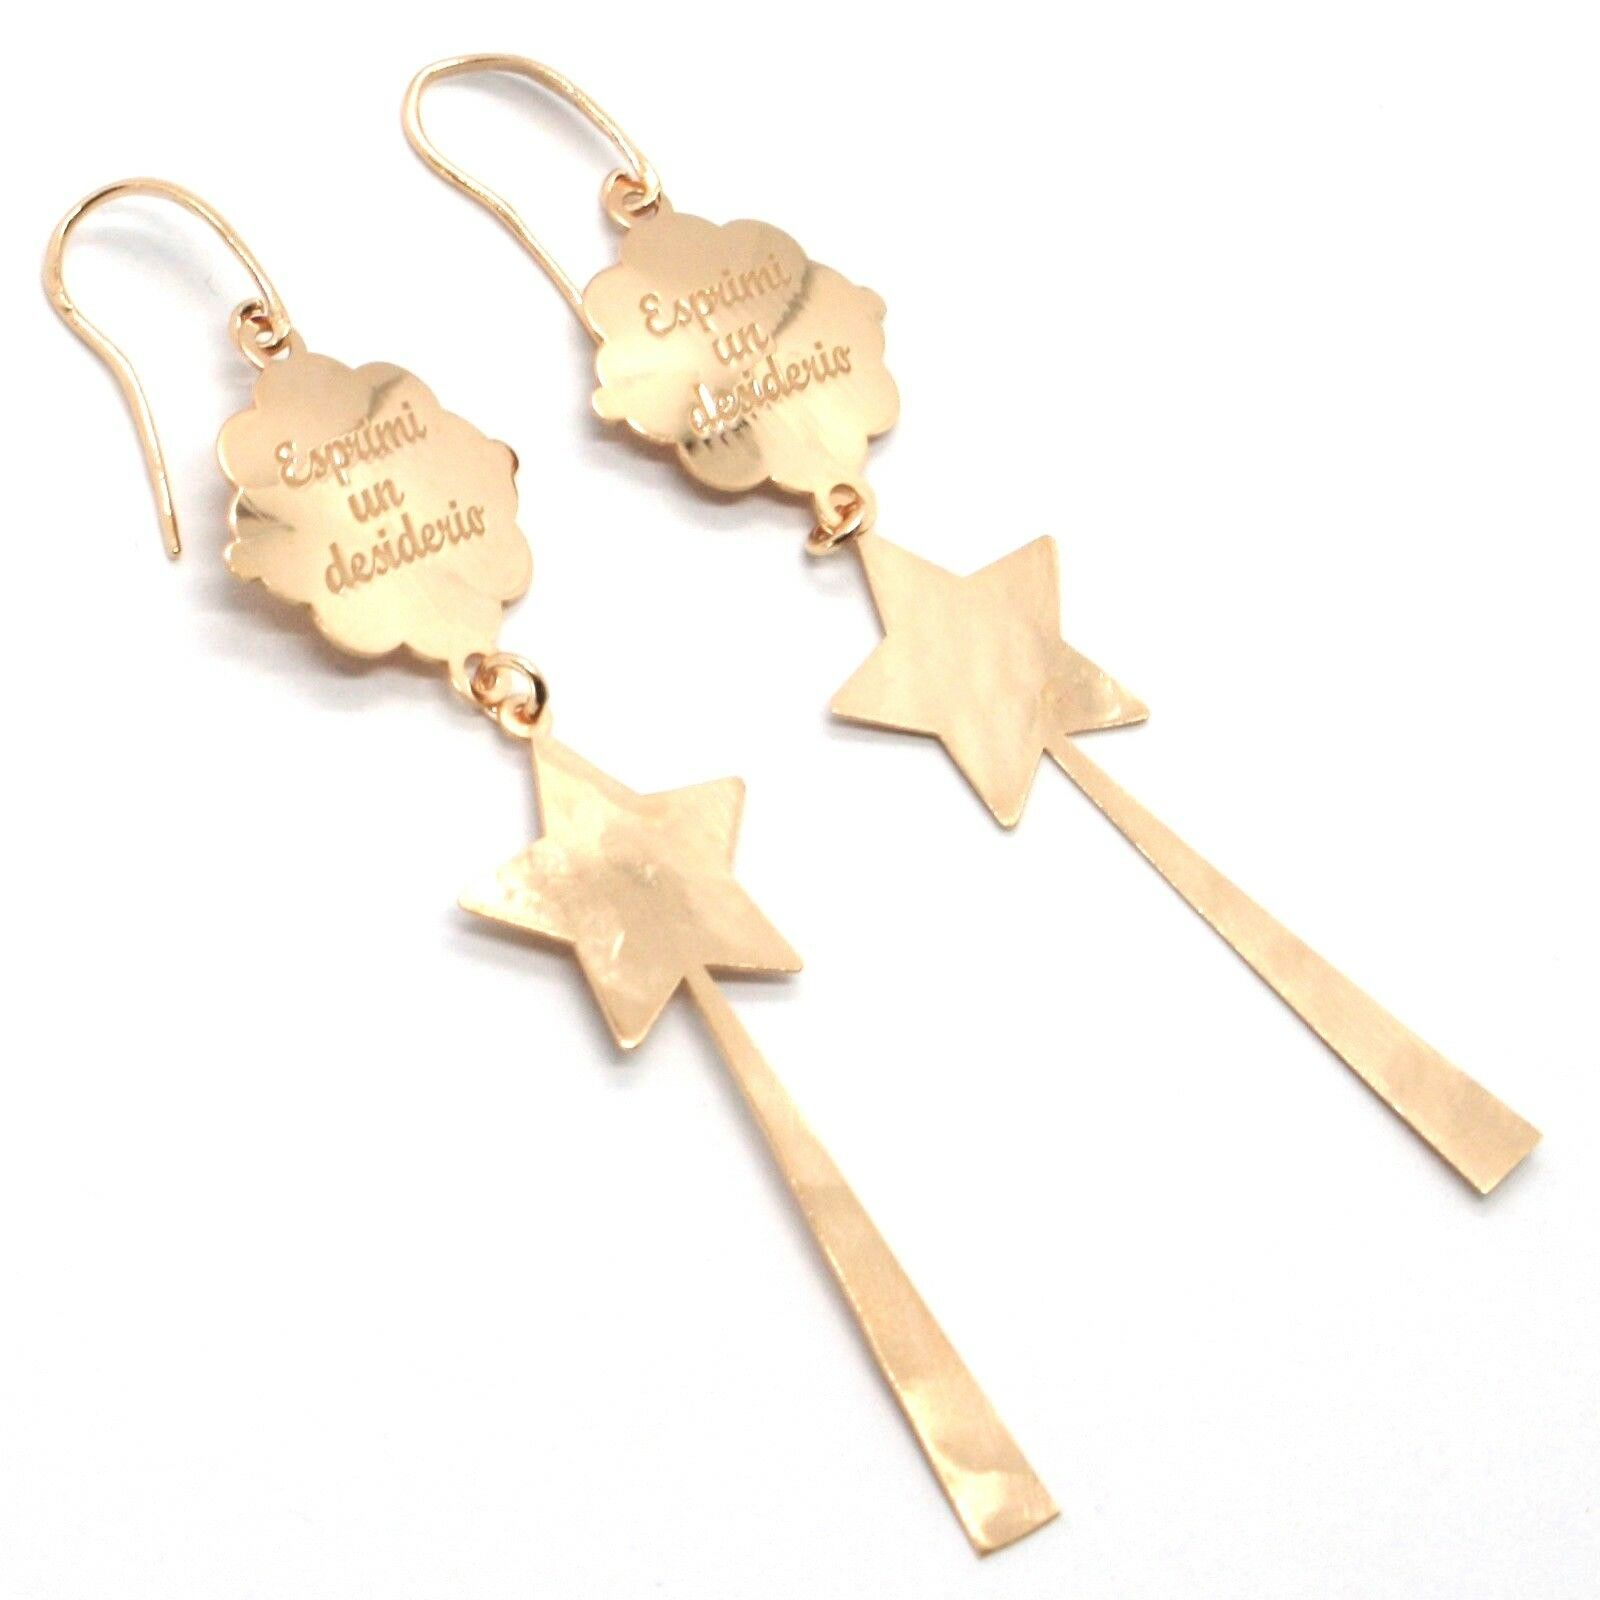 Silver Earrings 925 Laminated in Rose Gold le Favole with Magic Wand